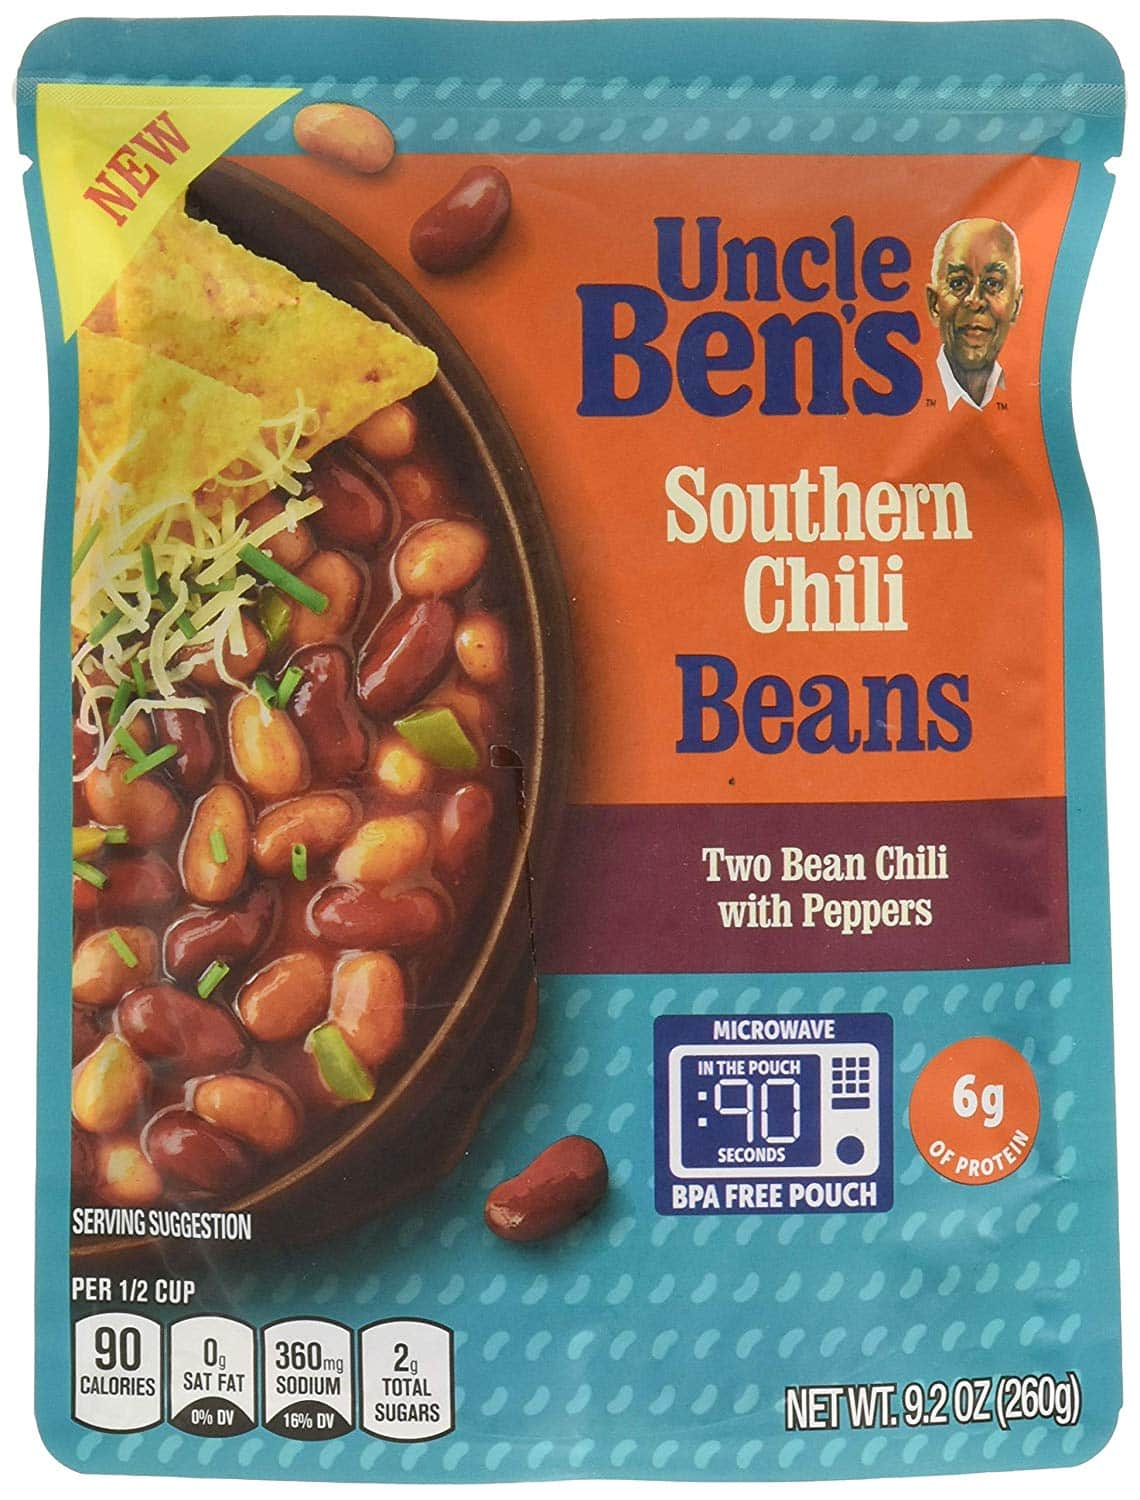 6-Pack 9.2oz Uncle Ben's Ready To Heat Beans (Pinto Kidney Chili) $5.03 w/ S&S